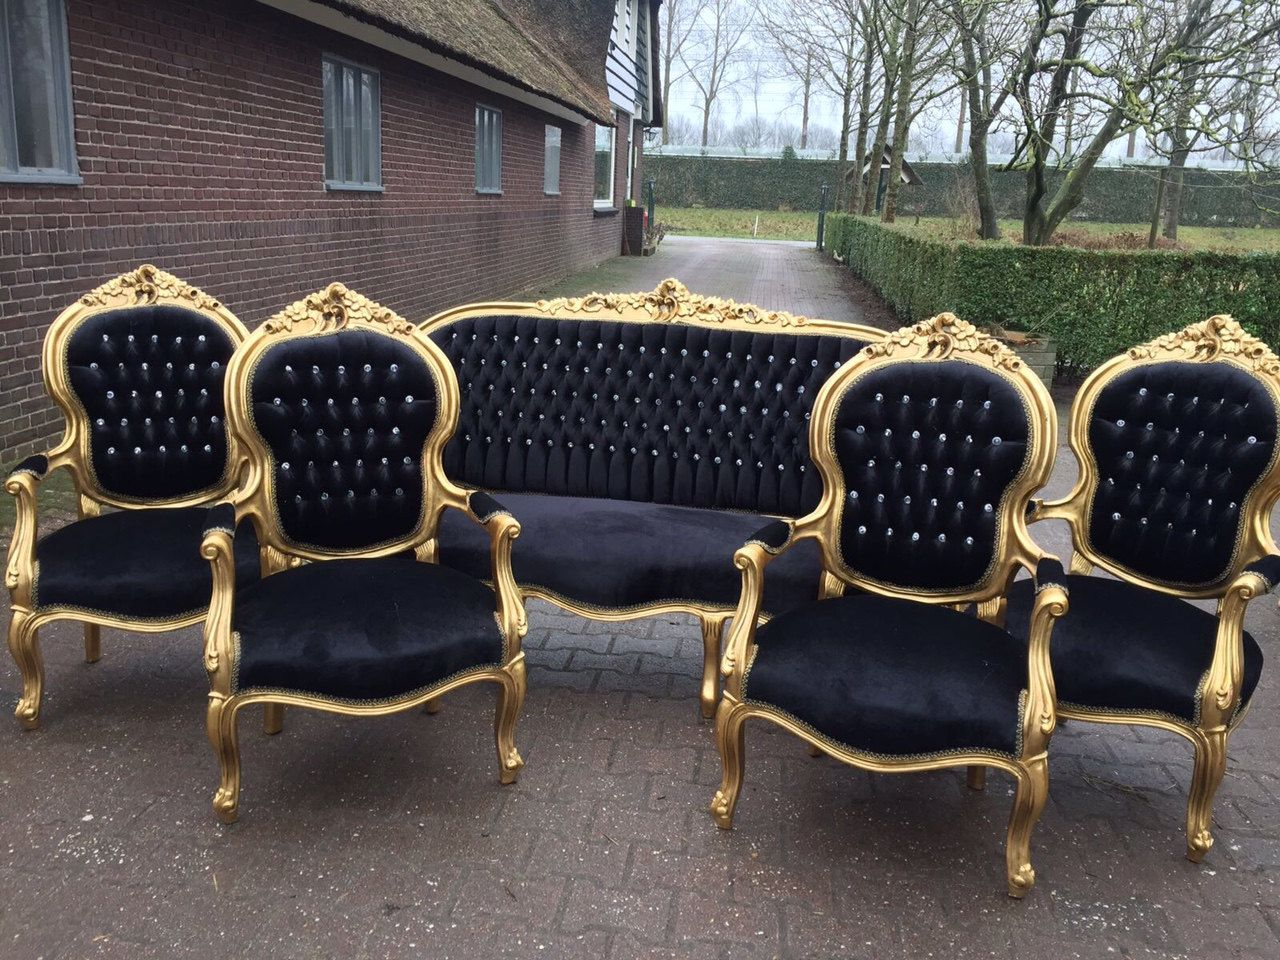 Marilyn monroe french chair - French Furniture Antique Chair French Settee 5 Piece Set